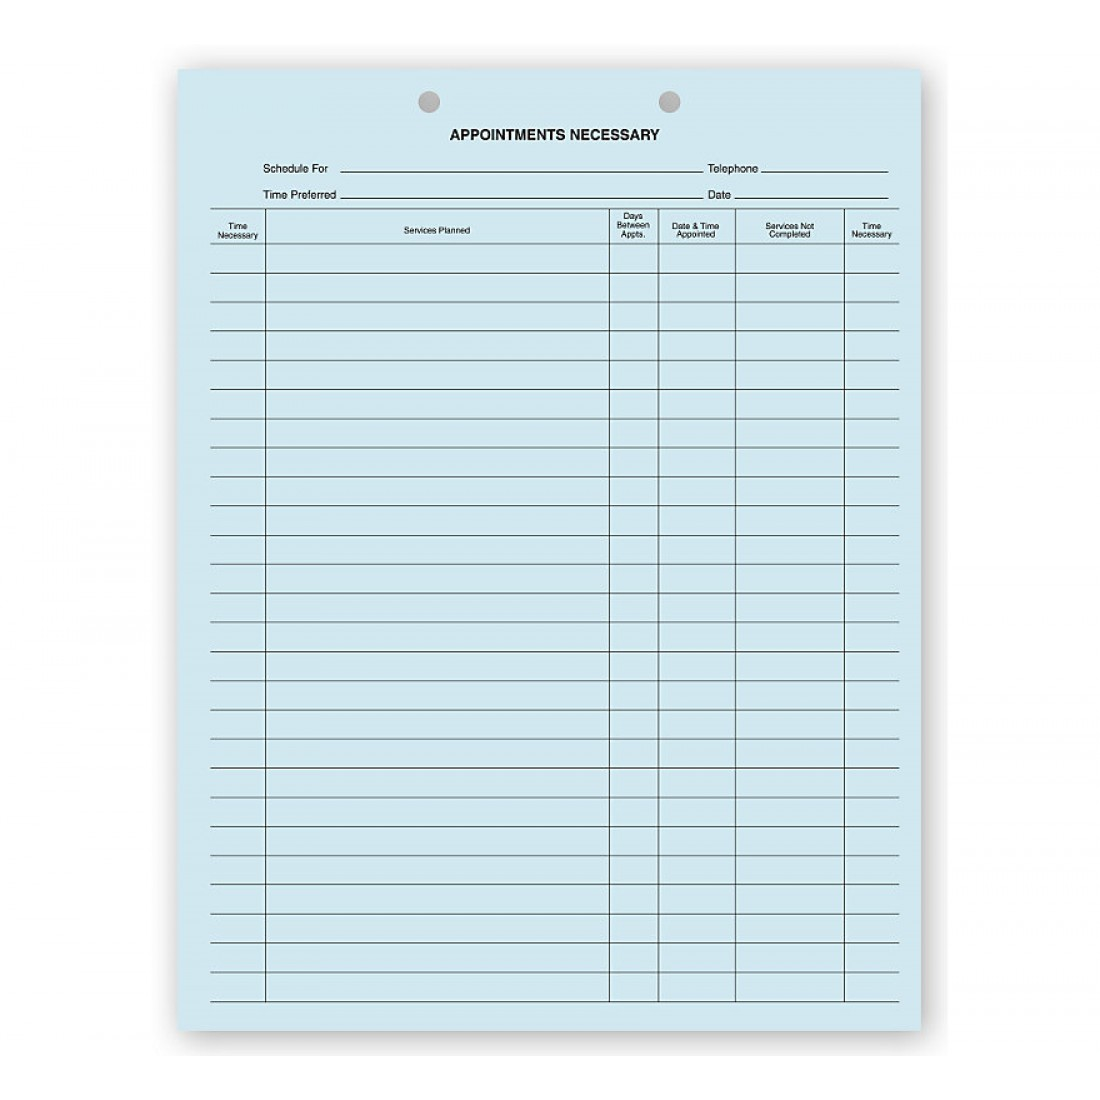 Dental Appointments Necessary Forms 2 Hole Punch Blue Bond